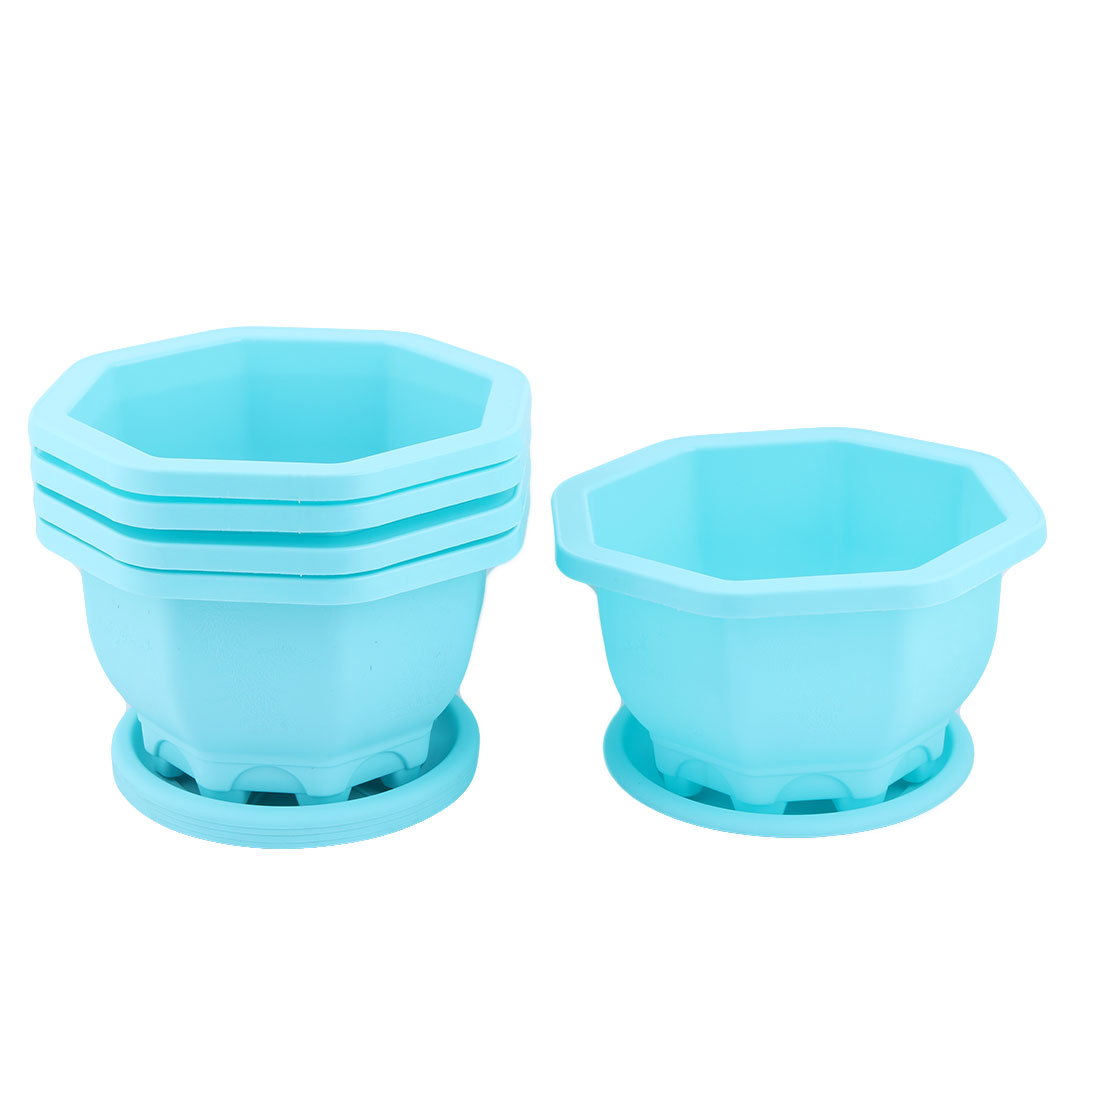 Outdoor Yard Plastic Round Flower Succulent Plant Pot Holder Tray Container Blue 5pcs